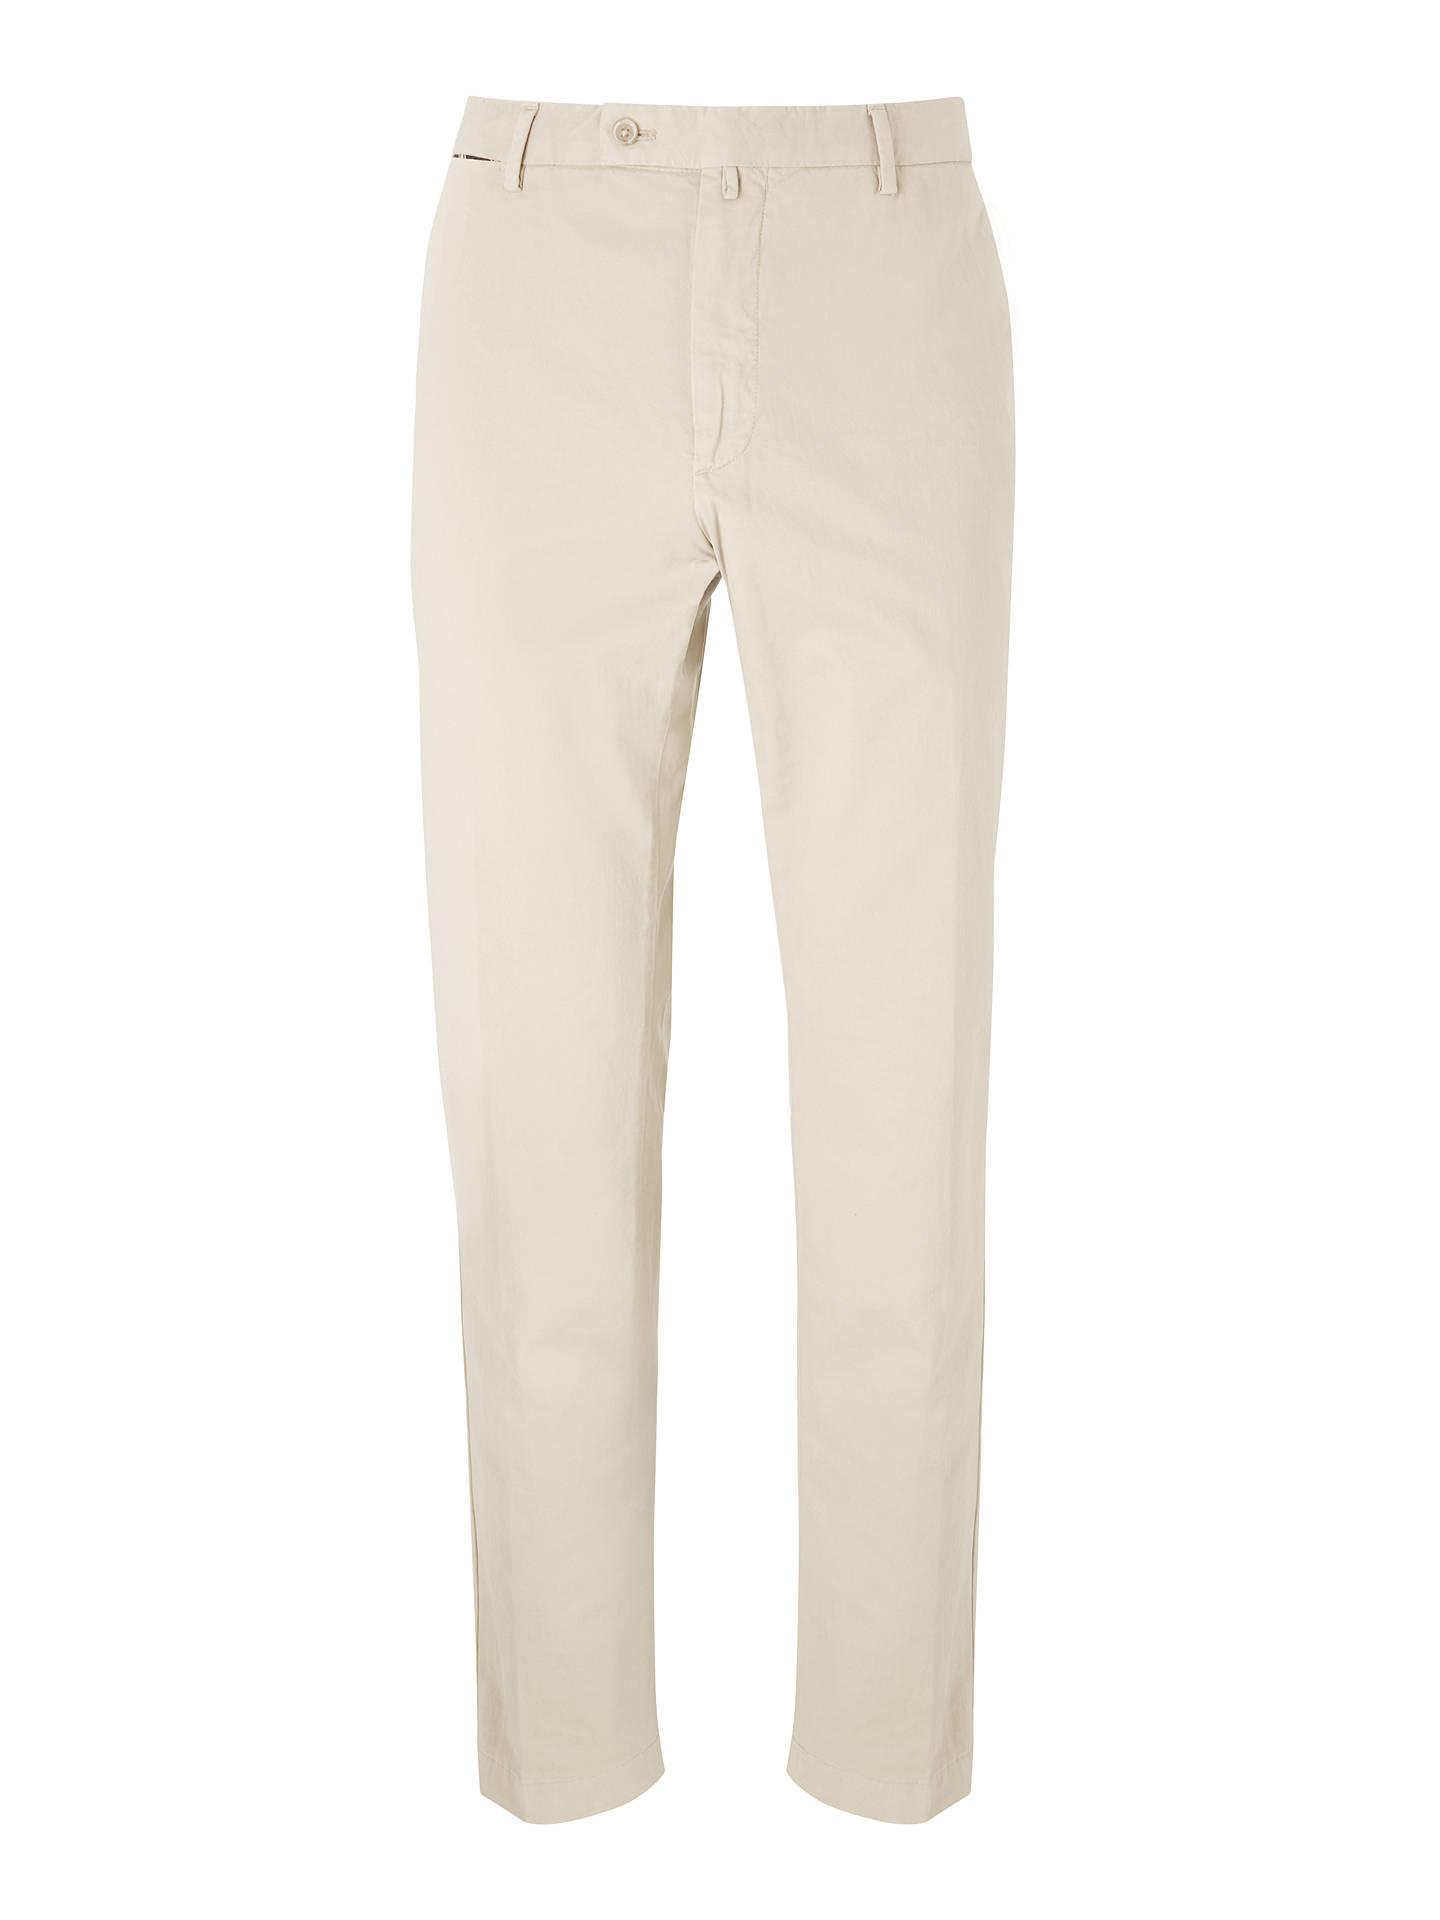 BuyHackett London Stretch Twill Cotton Chinos, Hackett Khaki, 32S Online at johnlewis.com